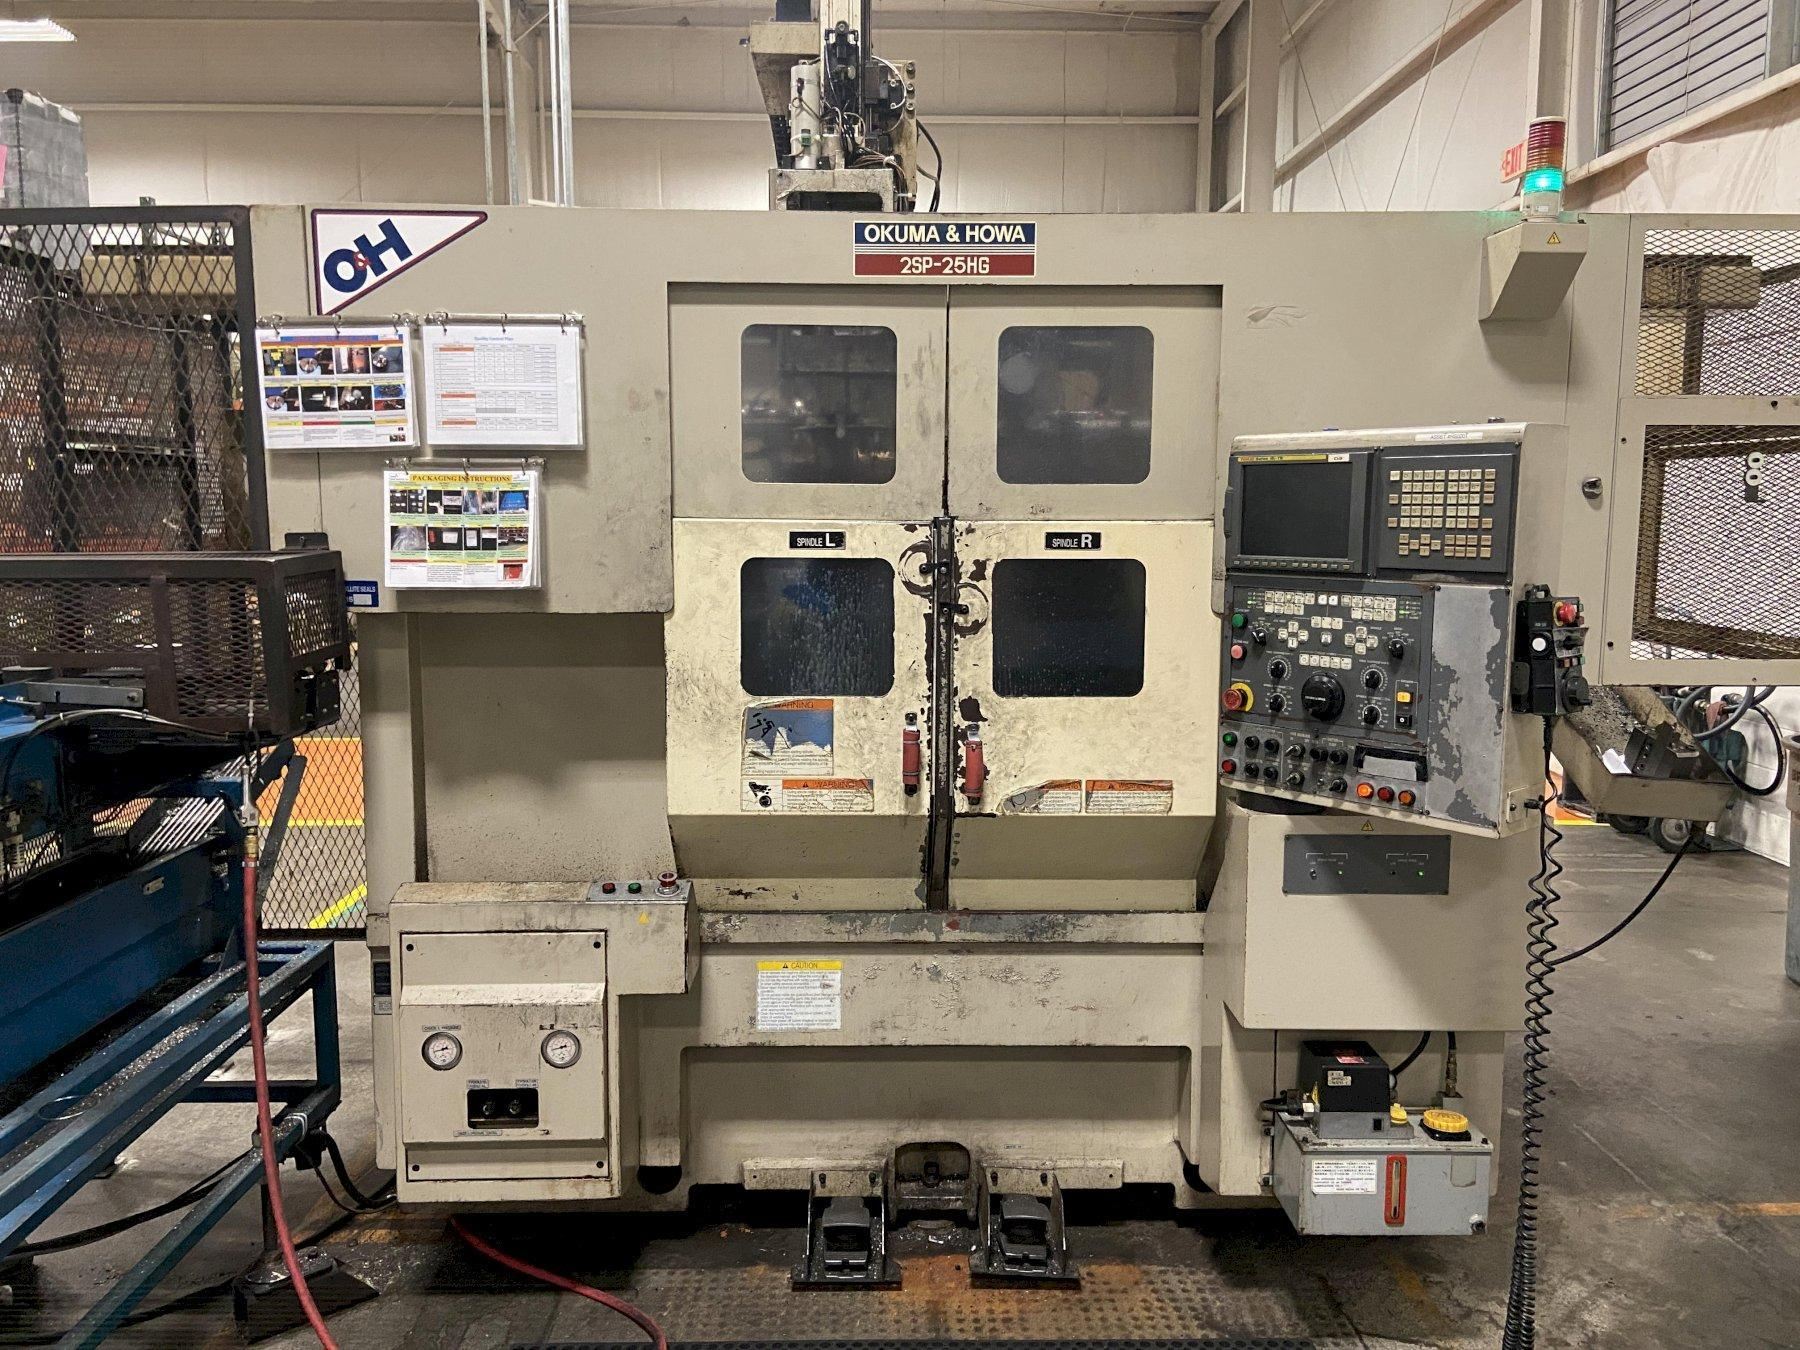 Okuma & Howa ACT 2SP-25HG Twin Spindle CNC Lathe with Gantry loader